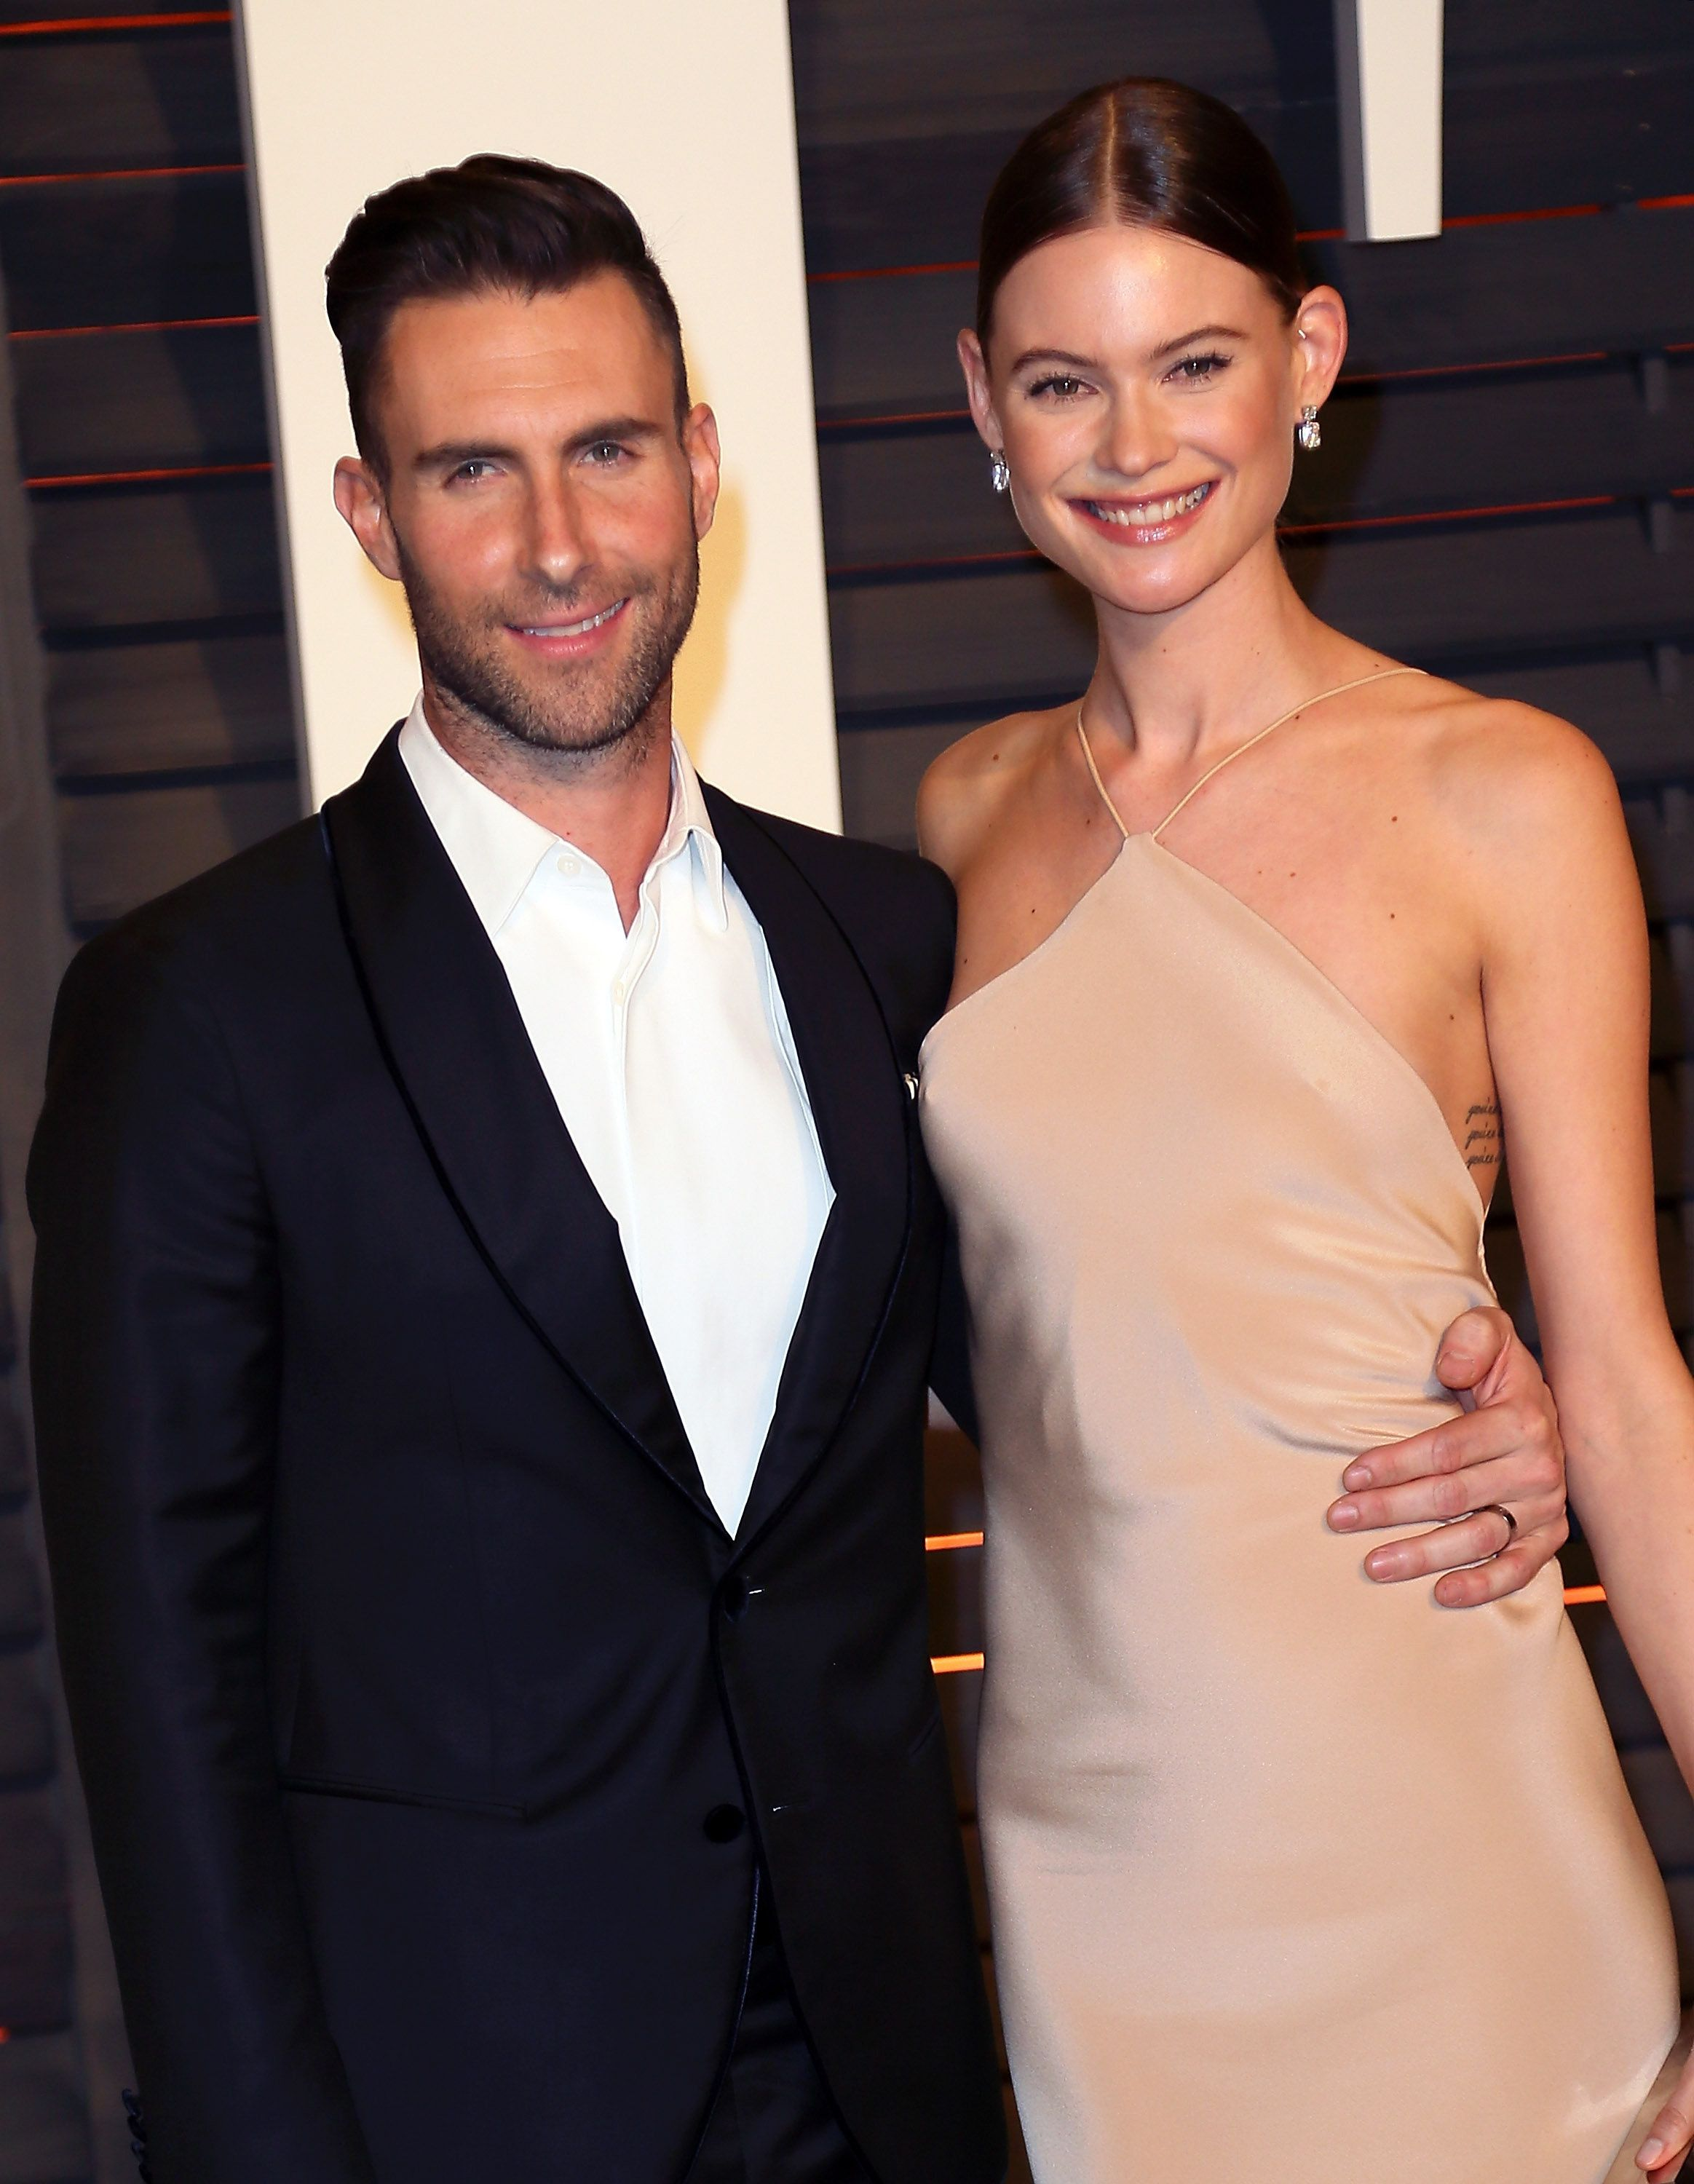 BEVERLY HILLS, CA - FEBRUARY 22:  Recording artist Adam Levine (L) and wife model Behati Prinsloo attend the 2015 Vanity Fair Oscar Party hosted by Graydon Carter at the Wallis Annenberg Center for the Performing Arts on February 22, 2015 in Beverly Hills, California.  (Photo by David Livingston/Getty Images)